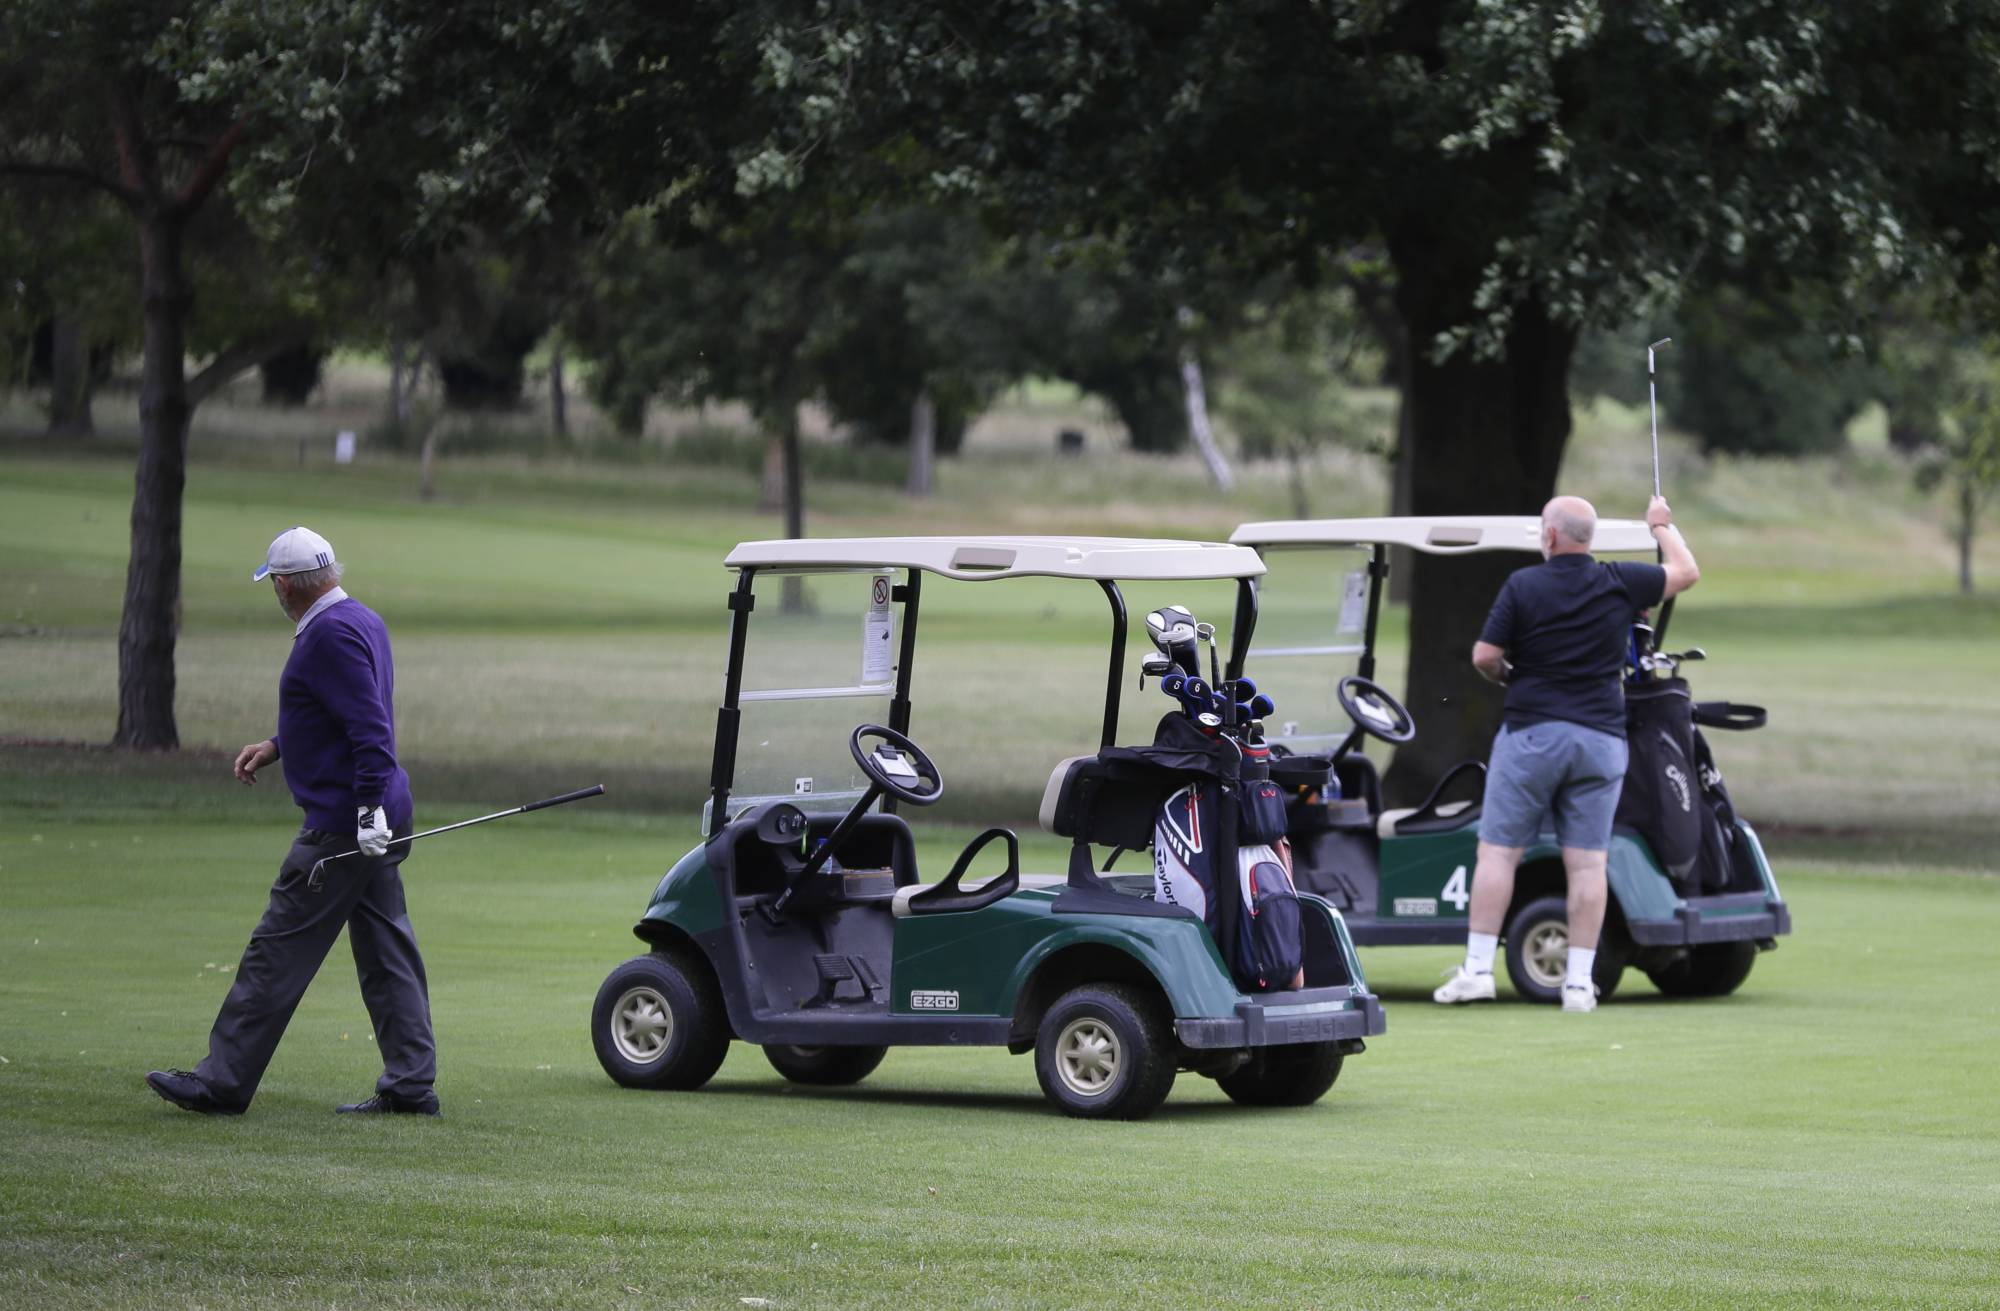 Golfers play on the golf course which would usually be used as a car park for Wimbledon tennis tournament visitors, in Wimbledon in London, Monday, June 29, 2020. The 2020 Wimbledon Tennis Championships, due to start Monday were cancelled due to the Coronavirus pandemic. (AP Photo/Kirsty Wigglesworth)